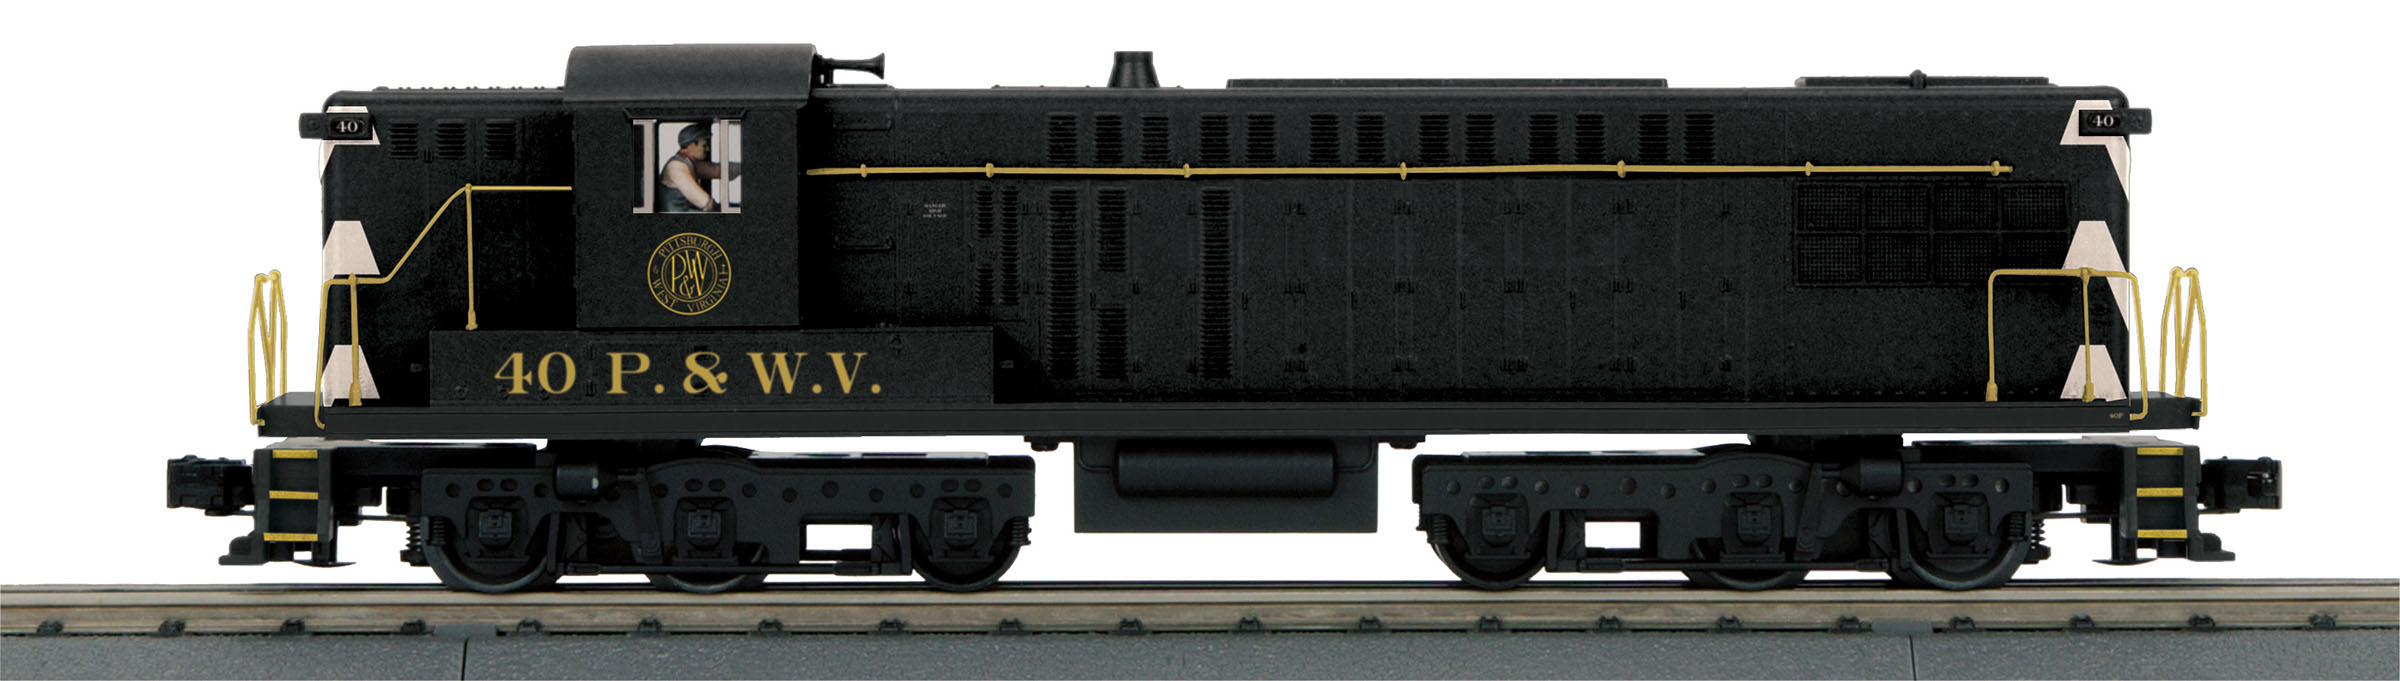 MTH 30205911 O-27 AS-616 w/PS3, P&WV #40 MTH30205911